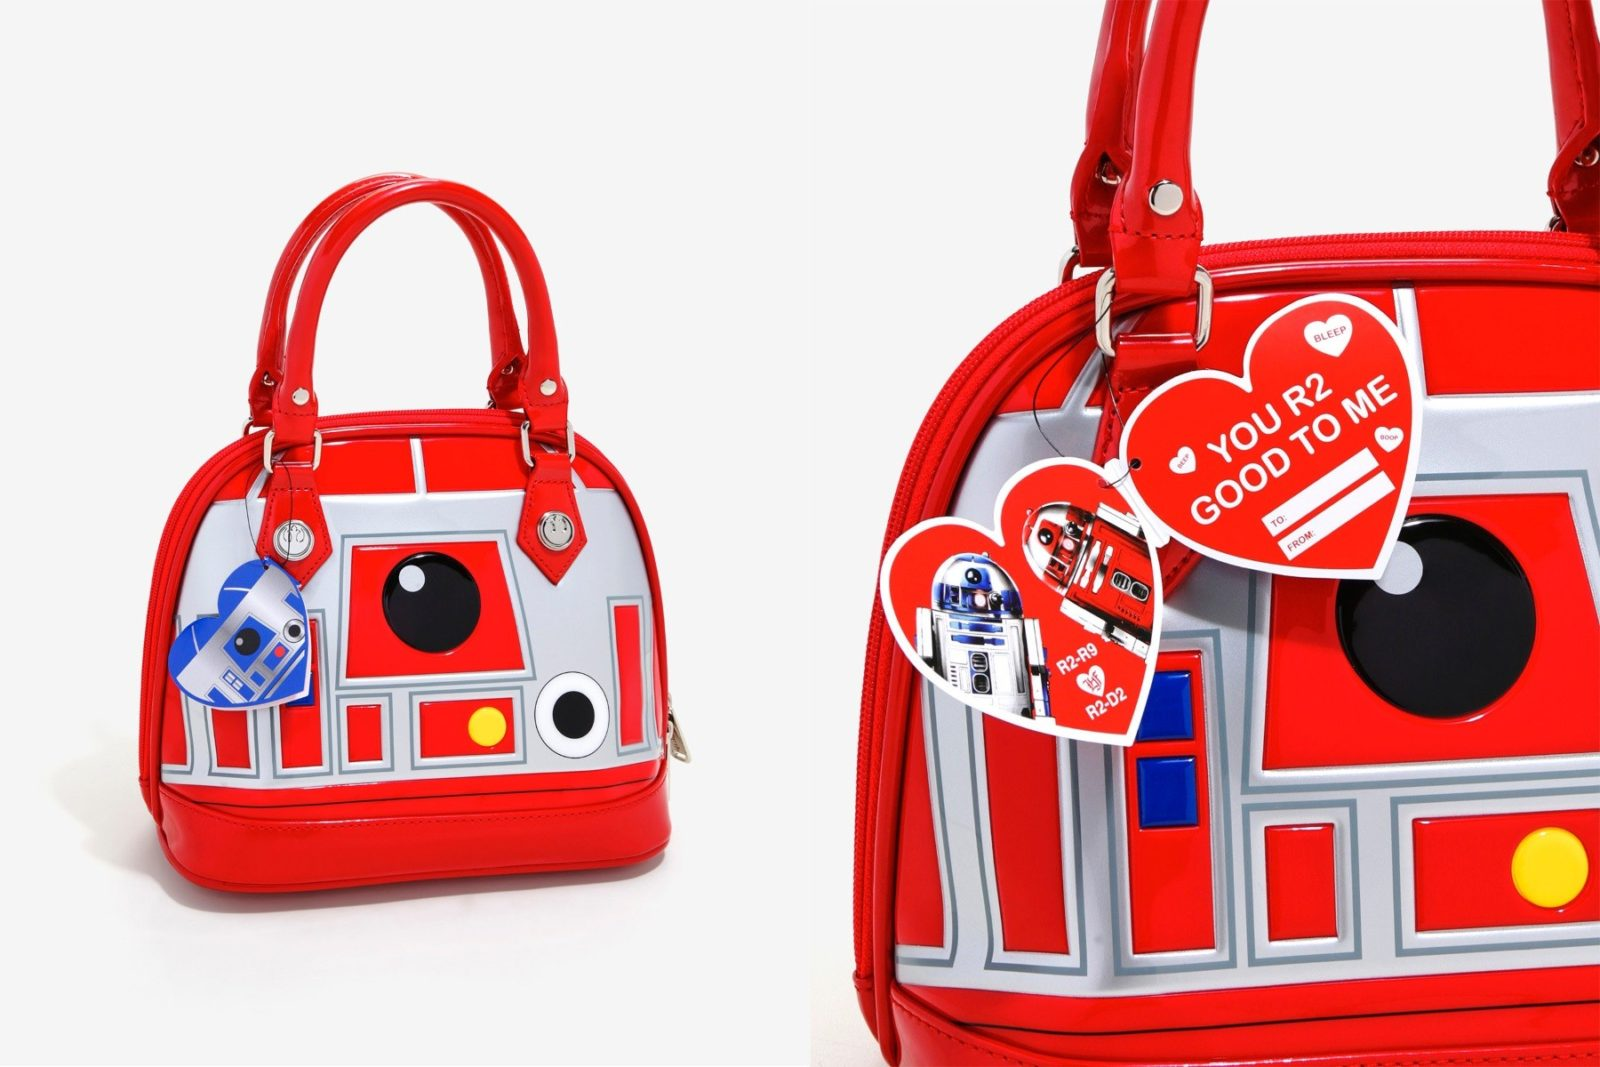 Box Lunch exclusive R2-R9 bag now online